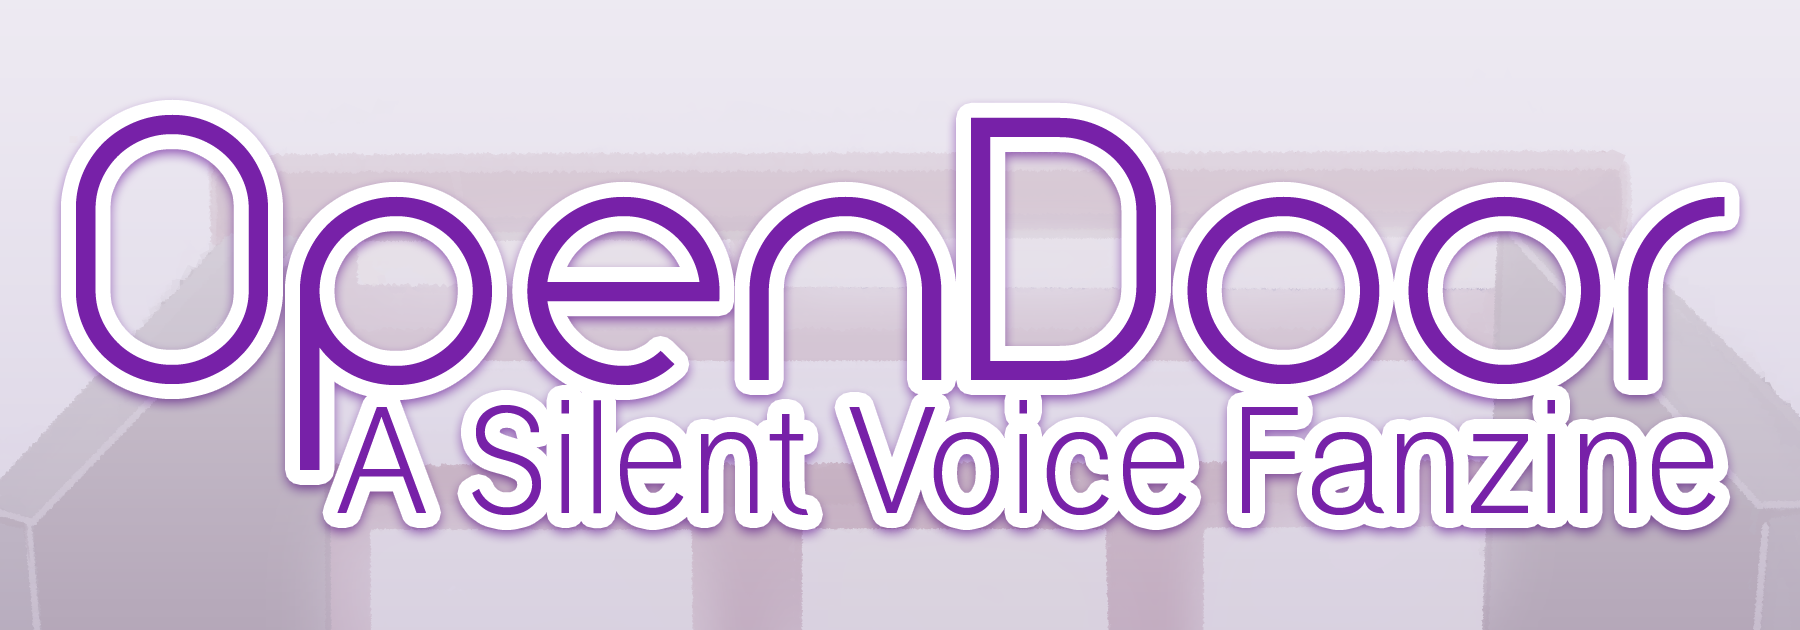 Open Door: A Silent Voice Fanzine